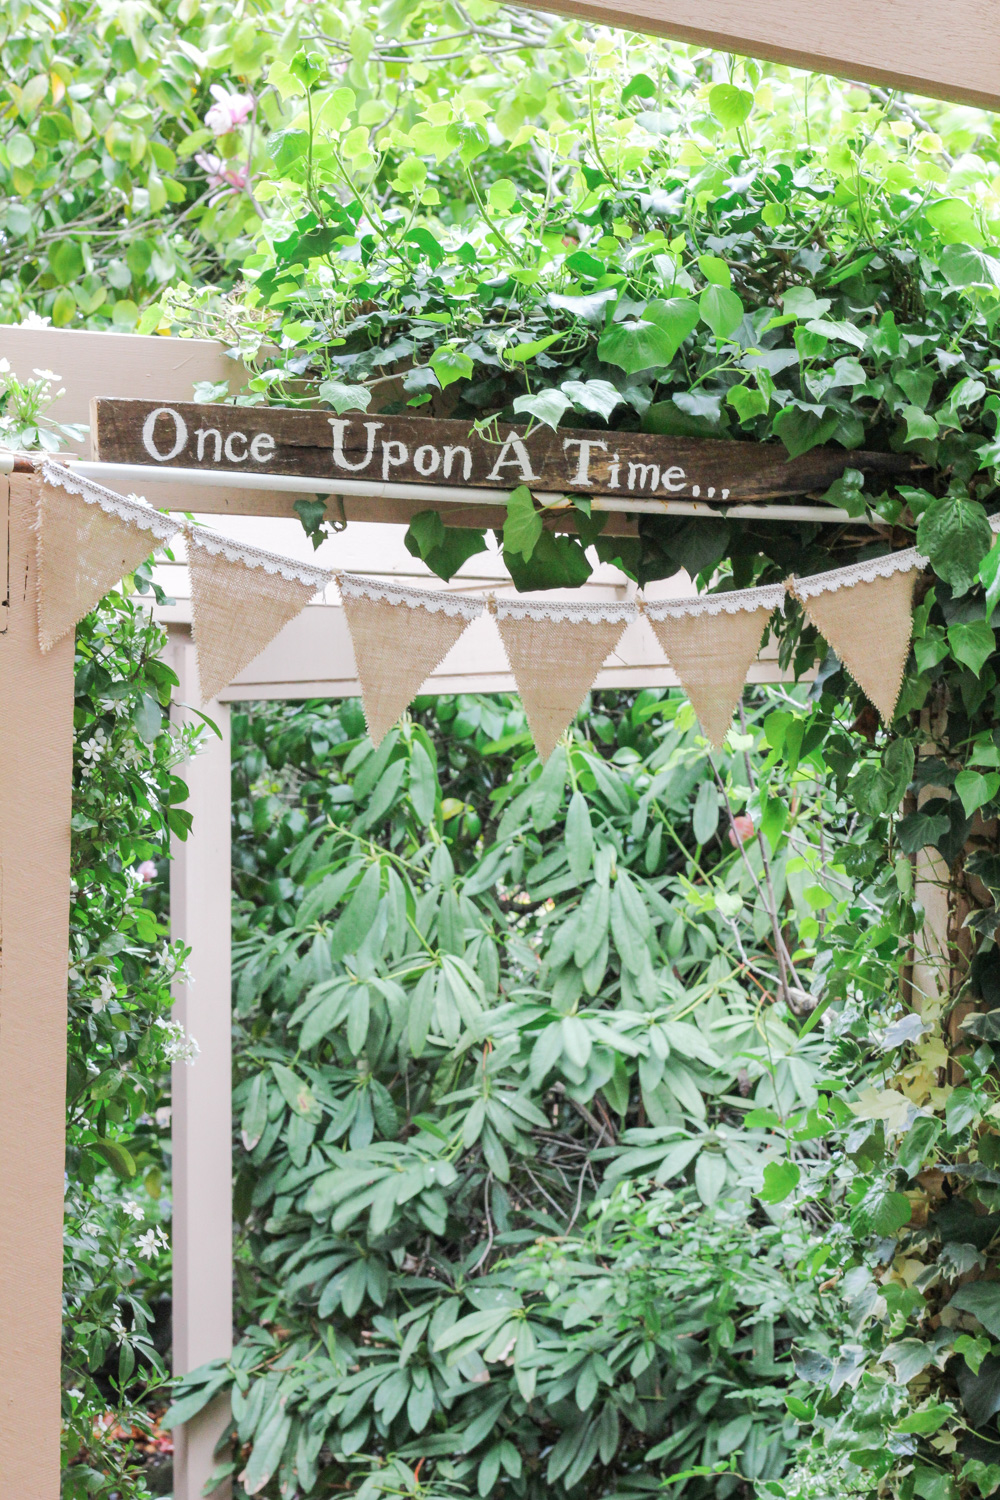 Once Upon A Time wooden sign and hessian and lace bunting